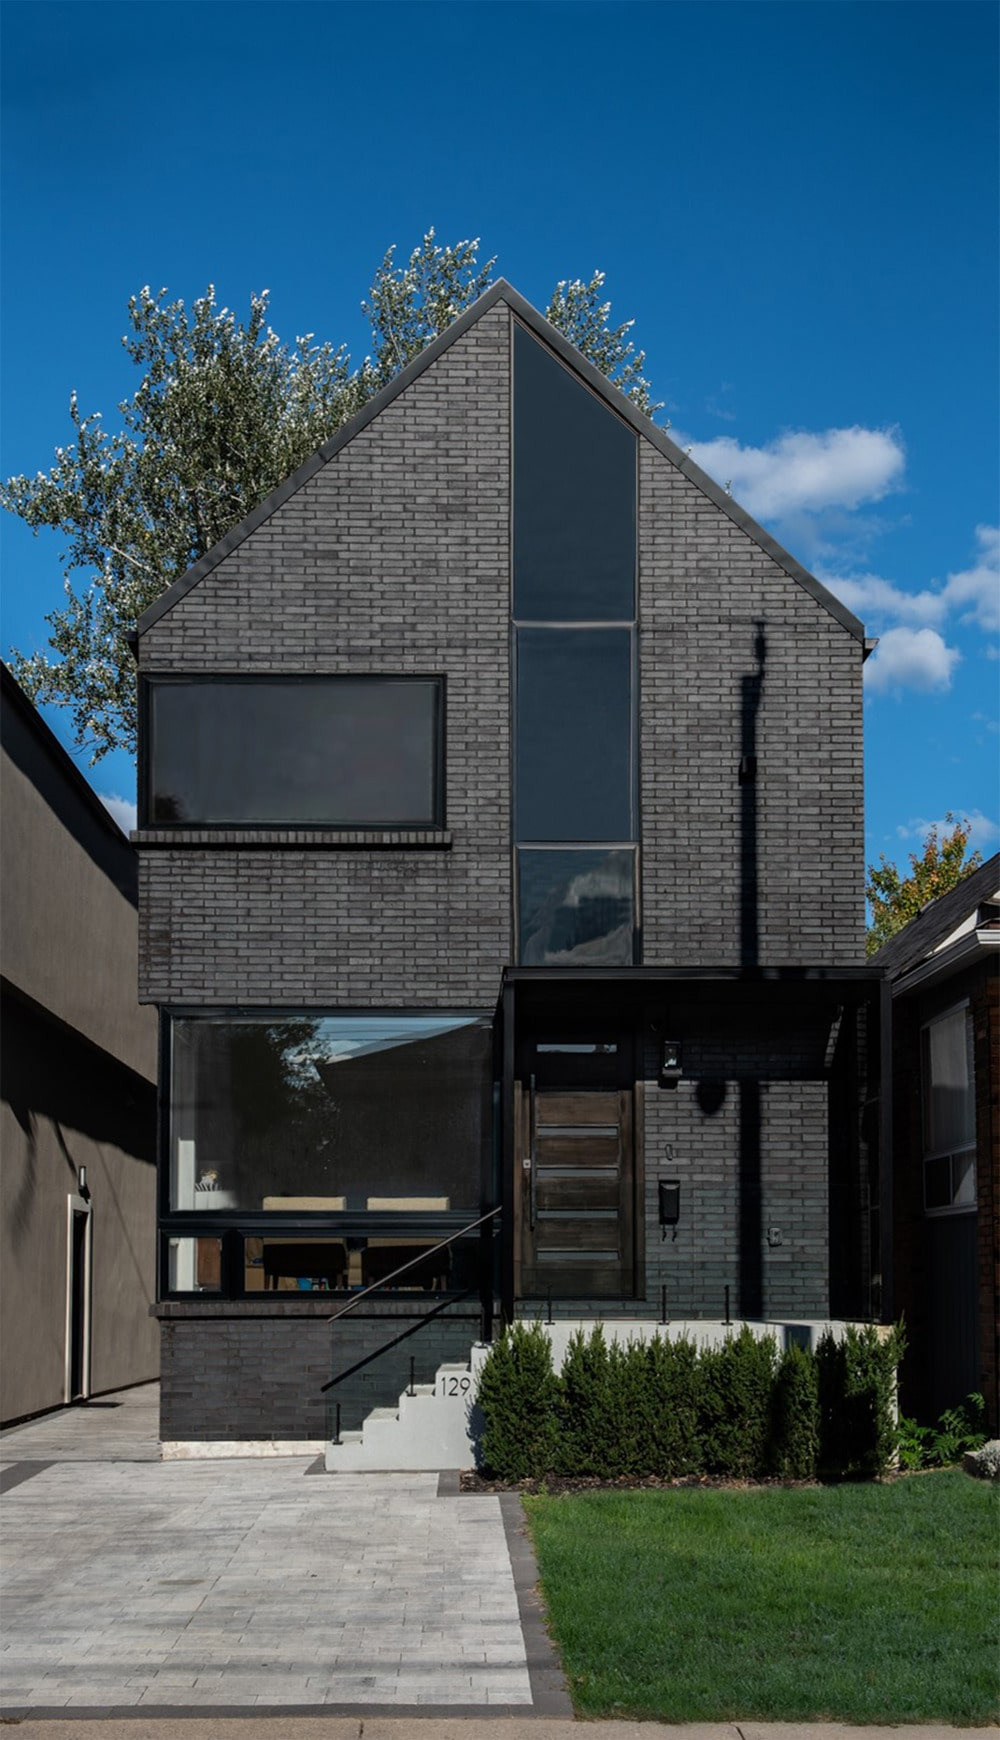 This is a view of the front of the house that has gray bricks and glass walls that give glimpses of the interiors of the house.